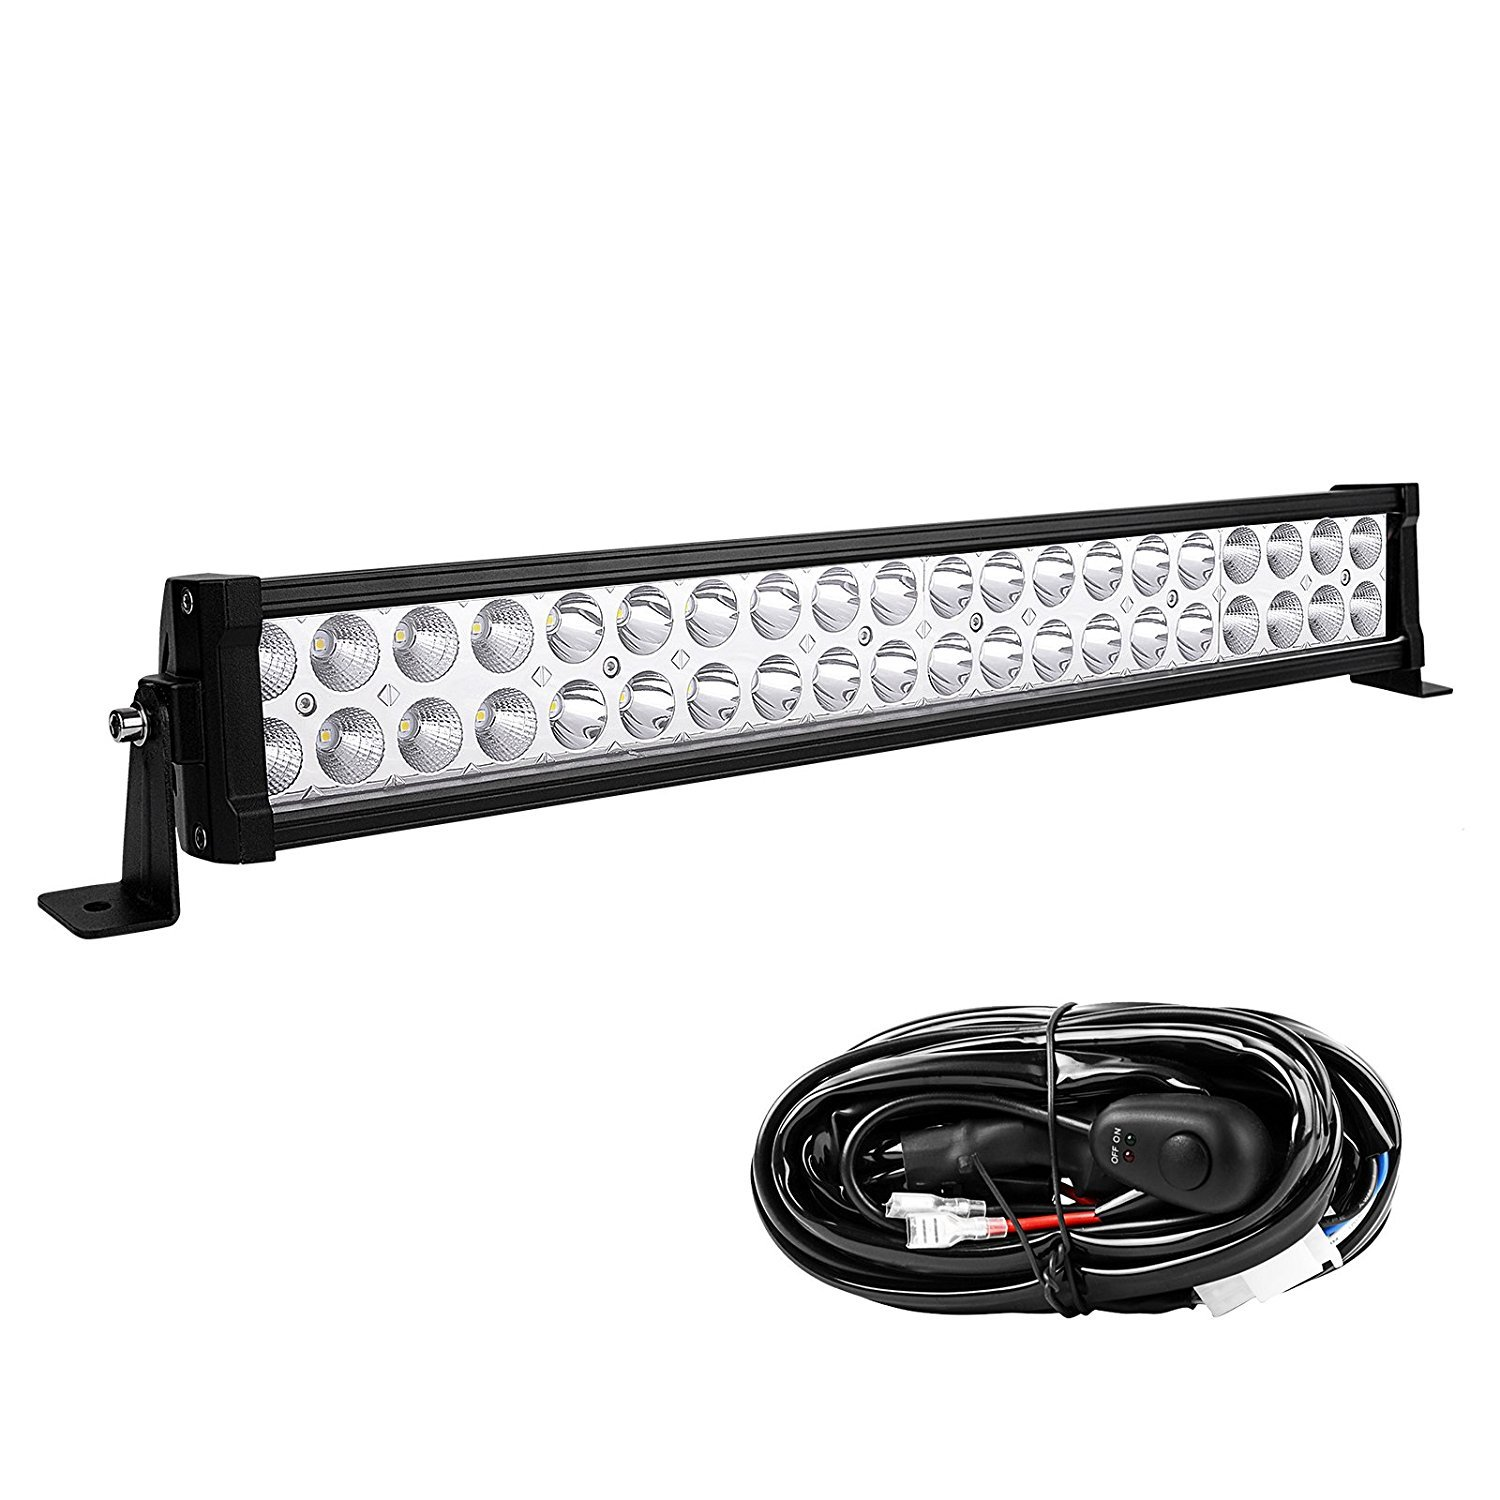 led light bar yitamotor 24 inch light bar offroad spot flood combo led bar waterproof dual row. Black Bedroom Furniture Sets. Home Design Ideas